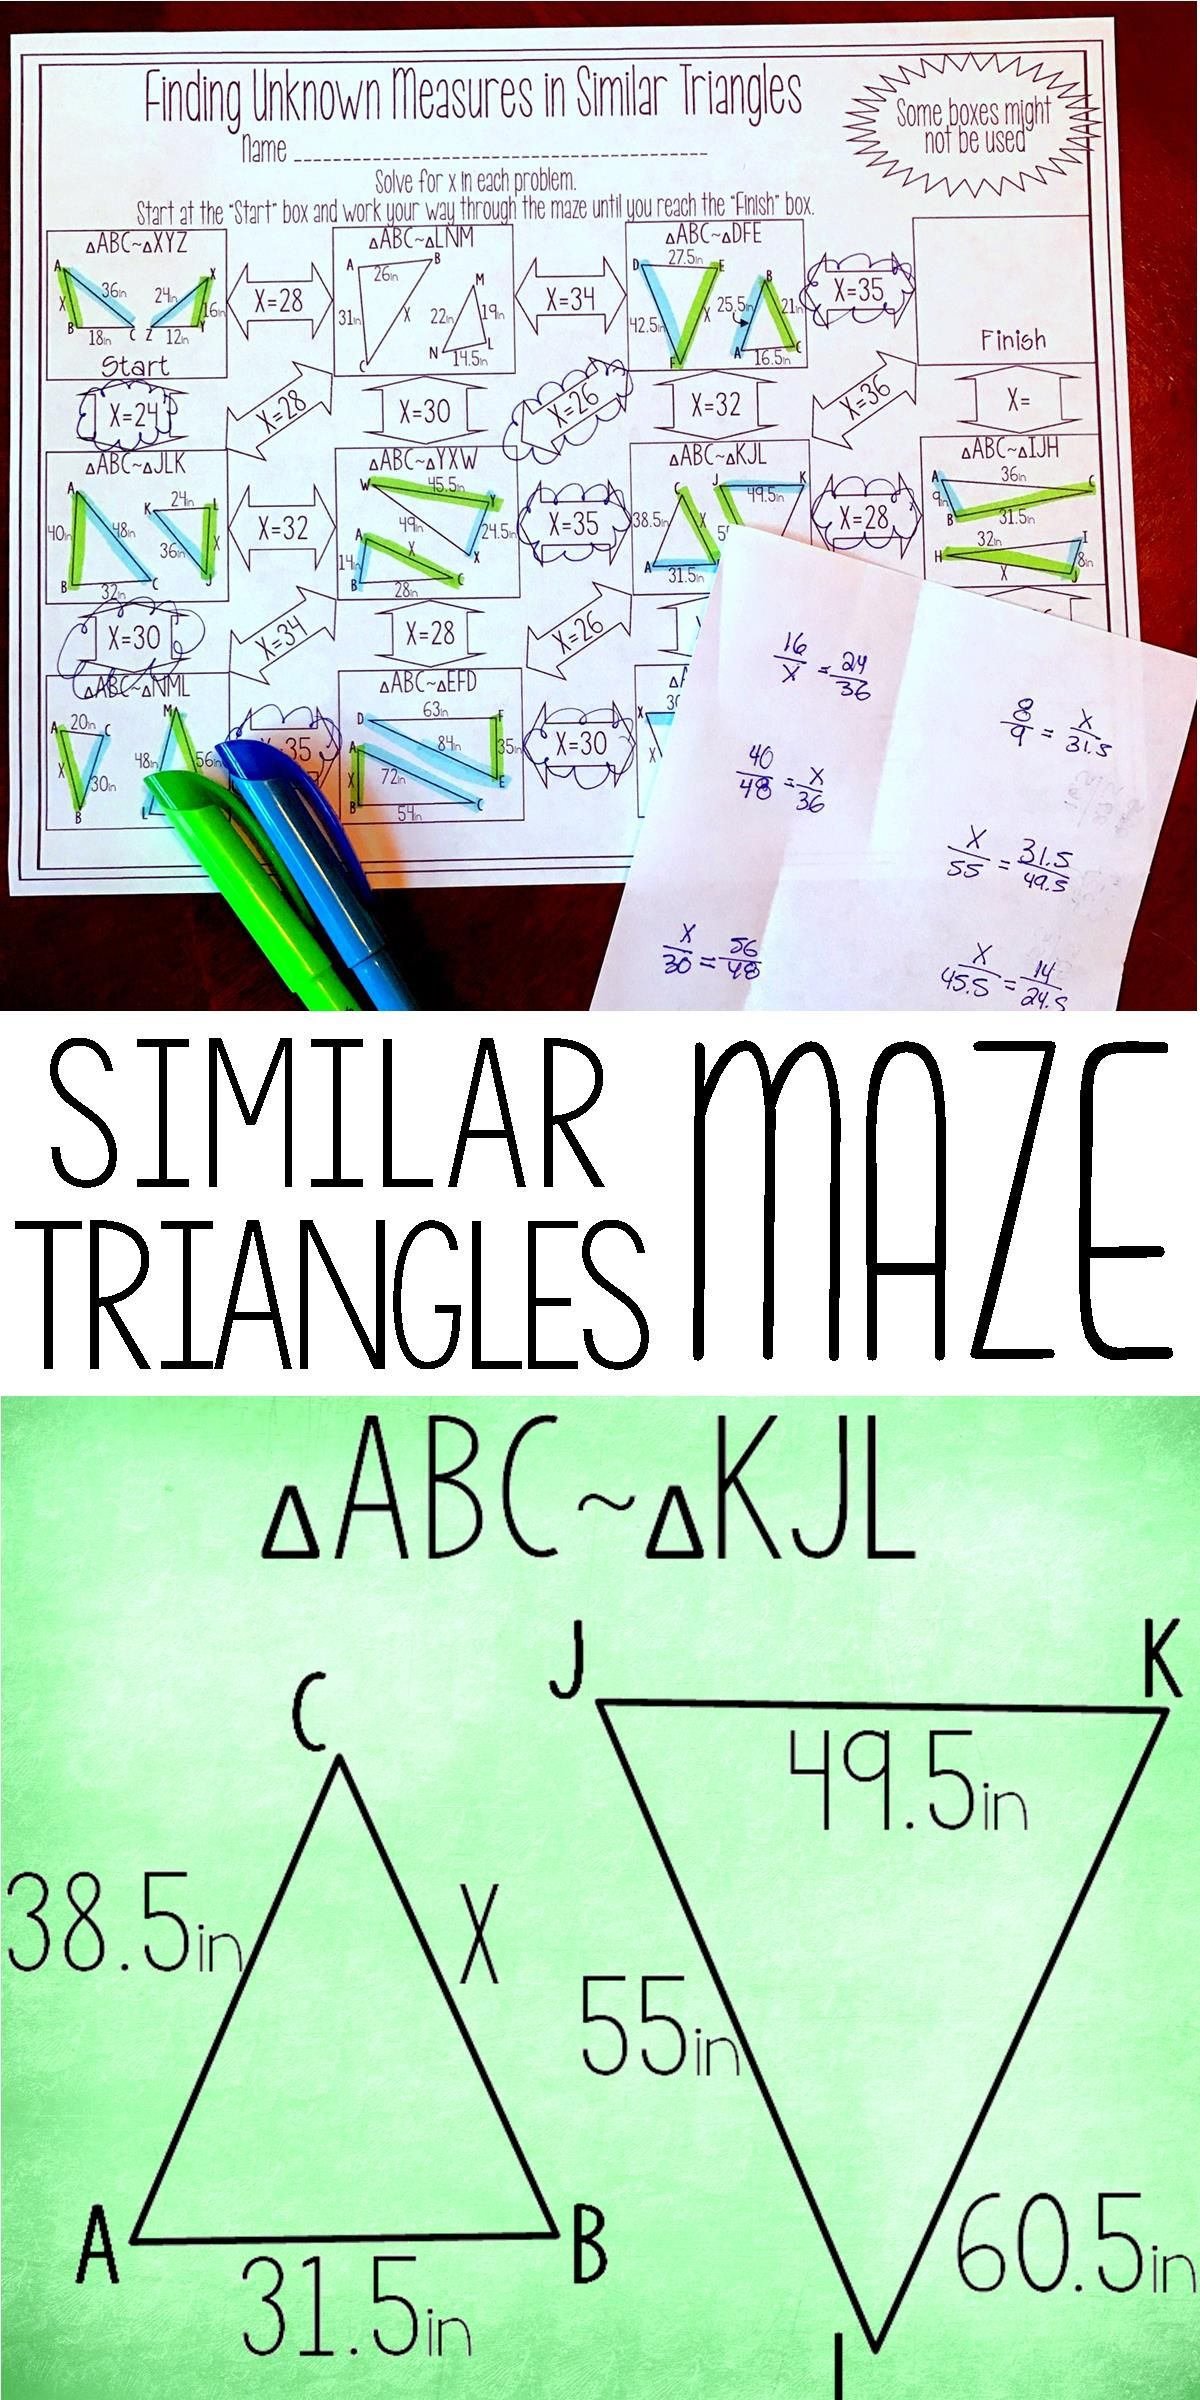 worksheet Similar Triangles And Proportions Worksheet finding unknown measures in similar triangles maze maze